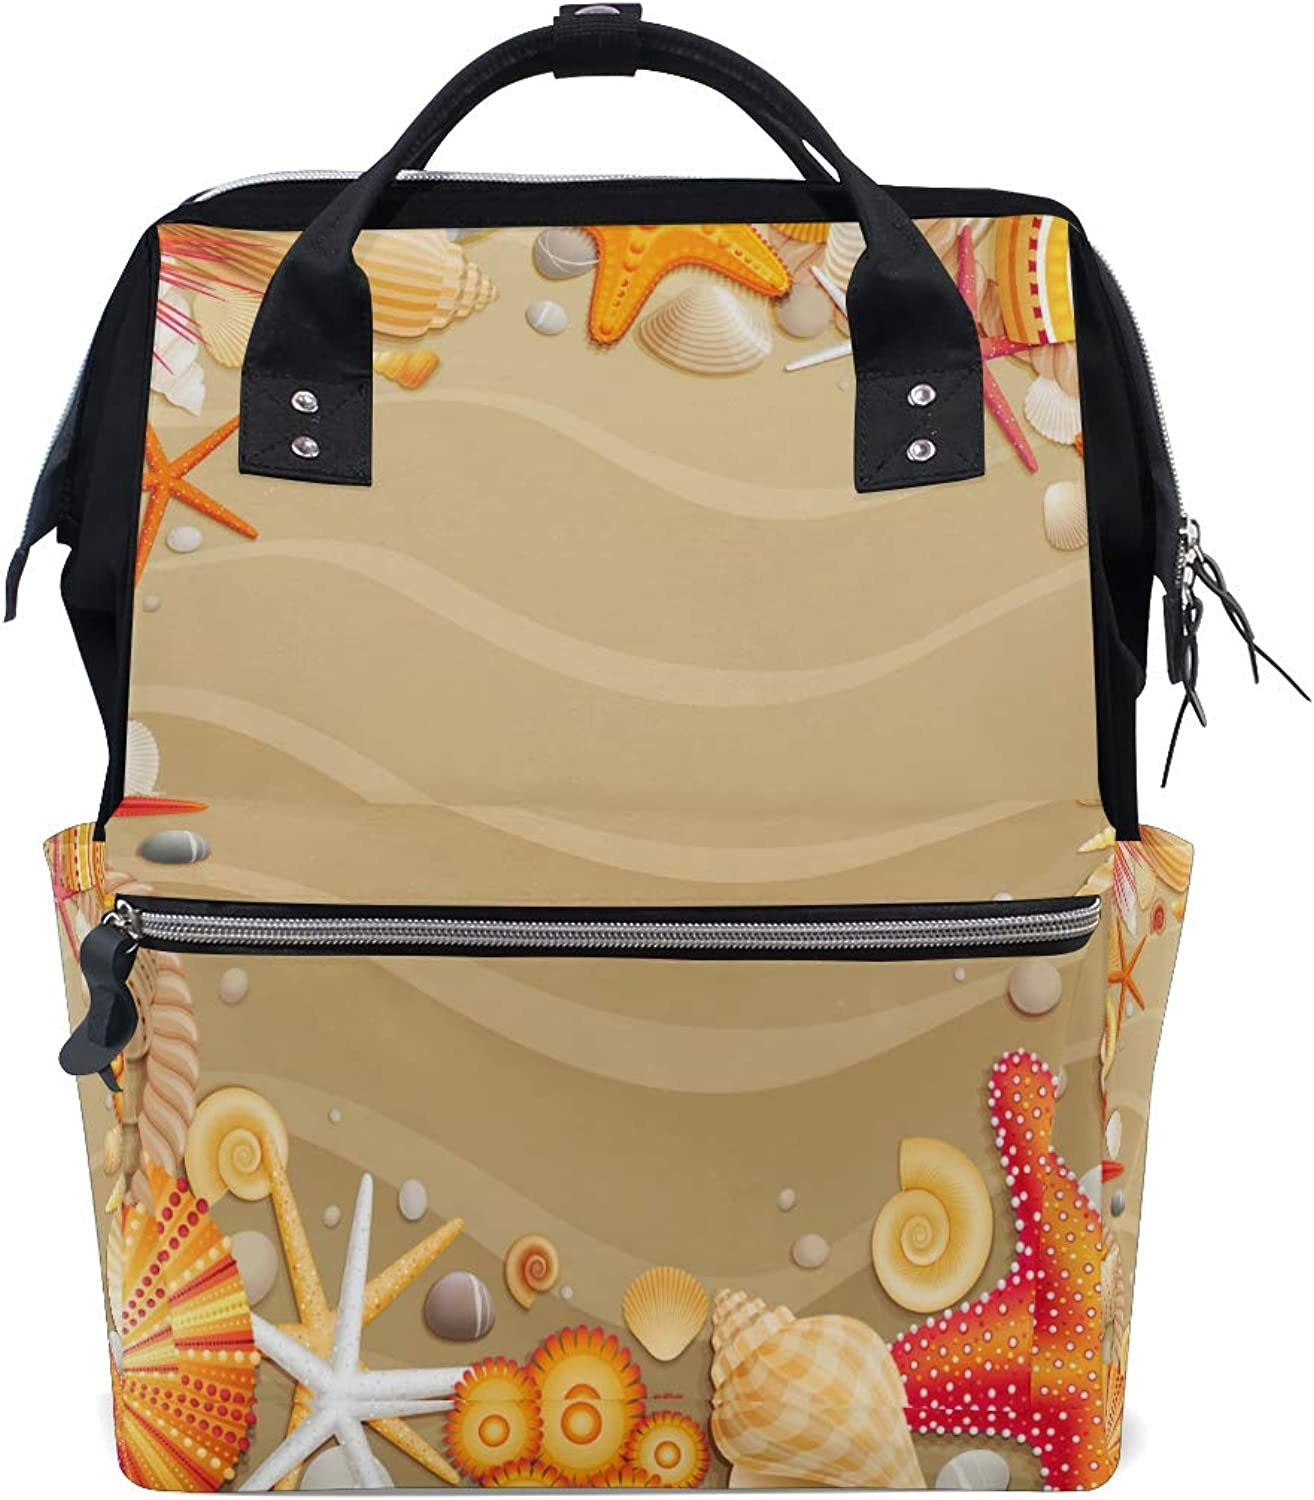 2b7285373b71 Tropical Beach Sand Starfishes Doctor Bag Style College Backpack ...